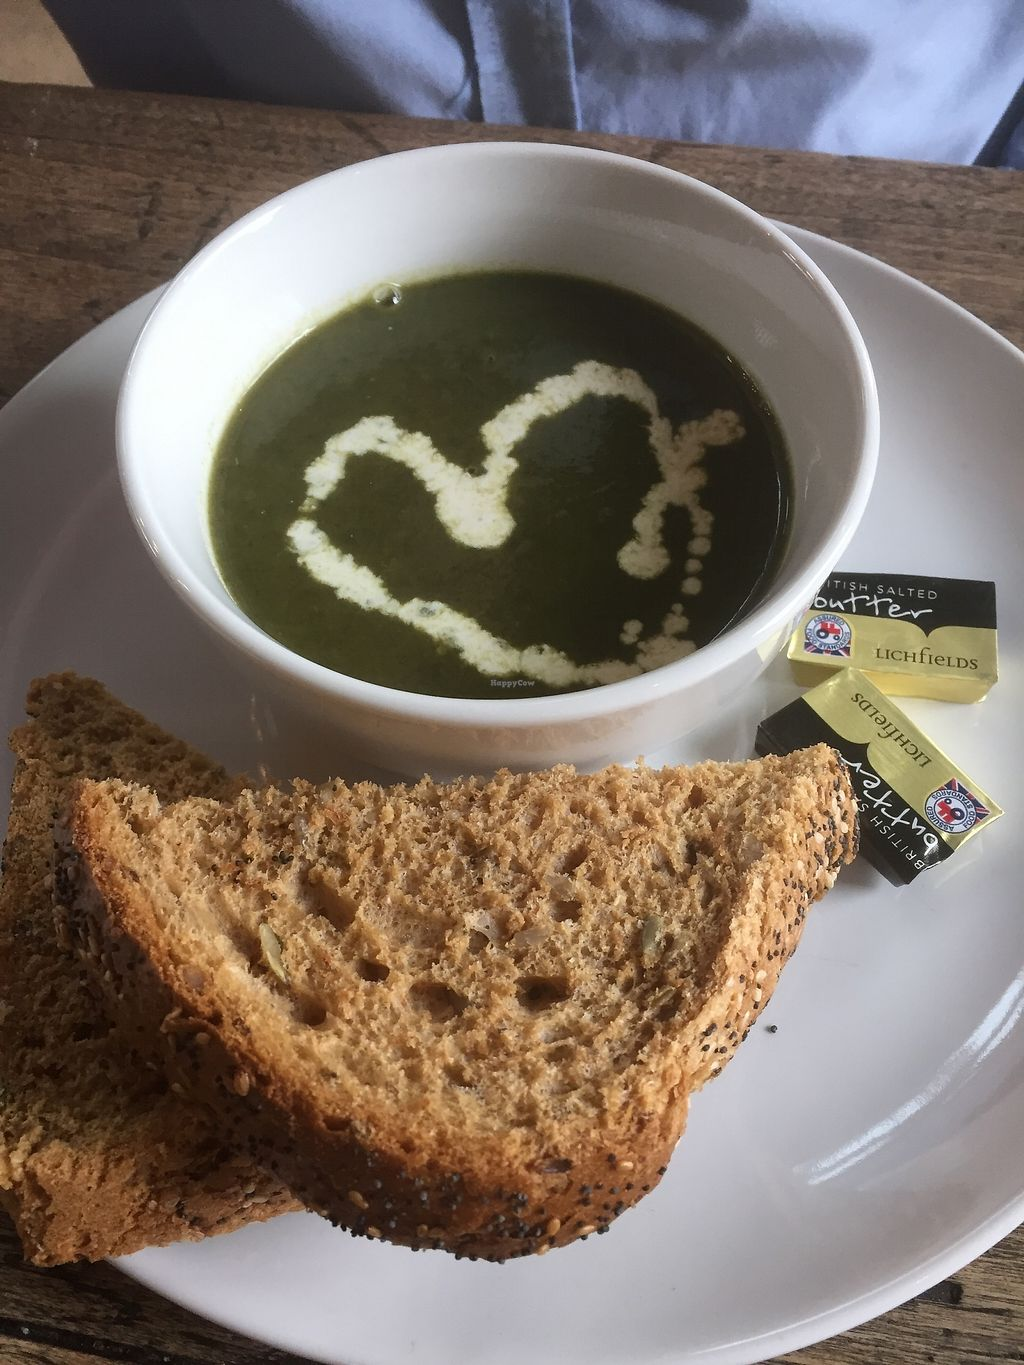 """Photo of World Peace Cafe  by <a href=""""/members/profile/Christiner"""">Christiner</a> <br/>Soup made with love <br/> November 26, 2017  - <a href='/contact/abuse/image/104370/329362'>Report</a>"""